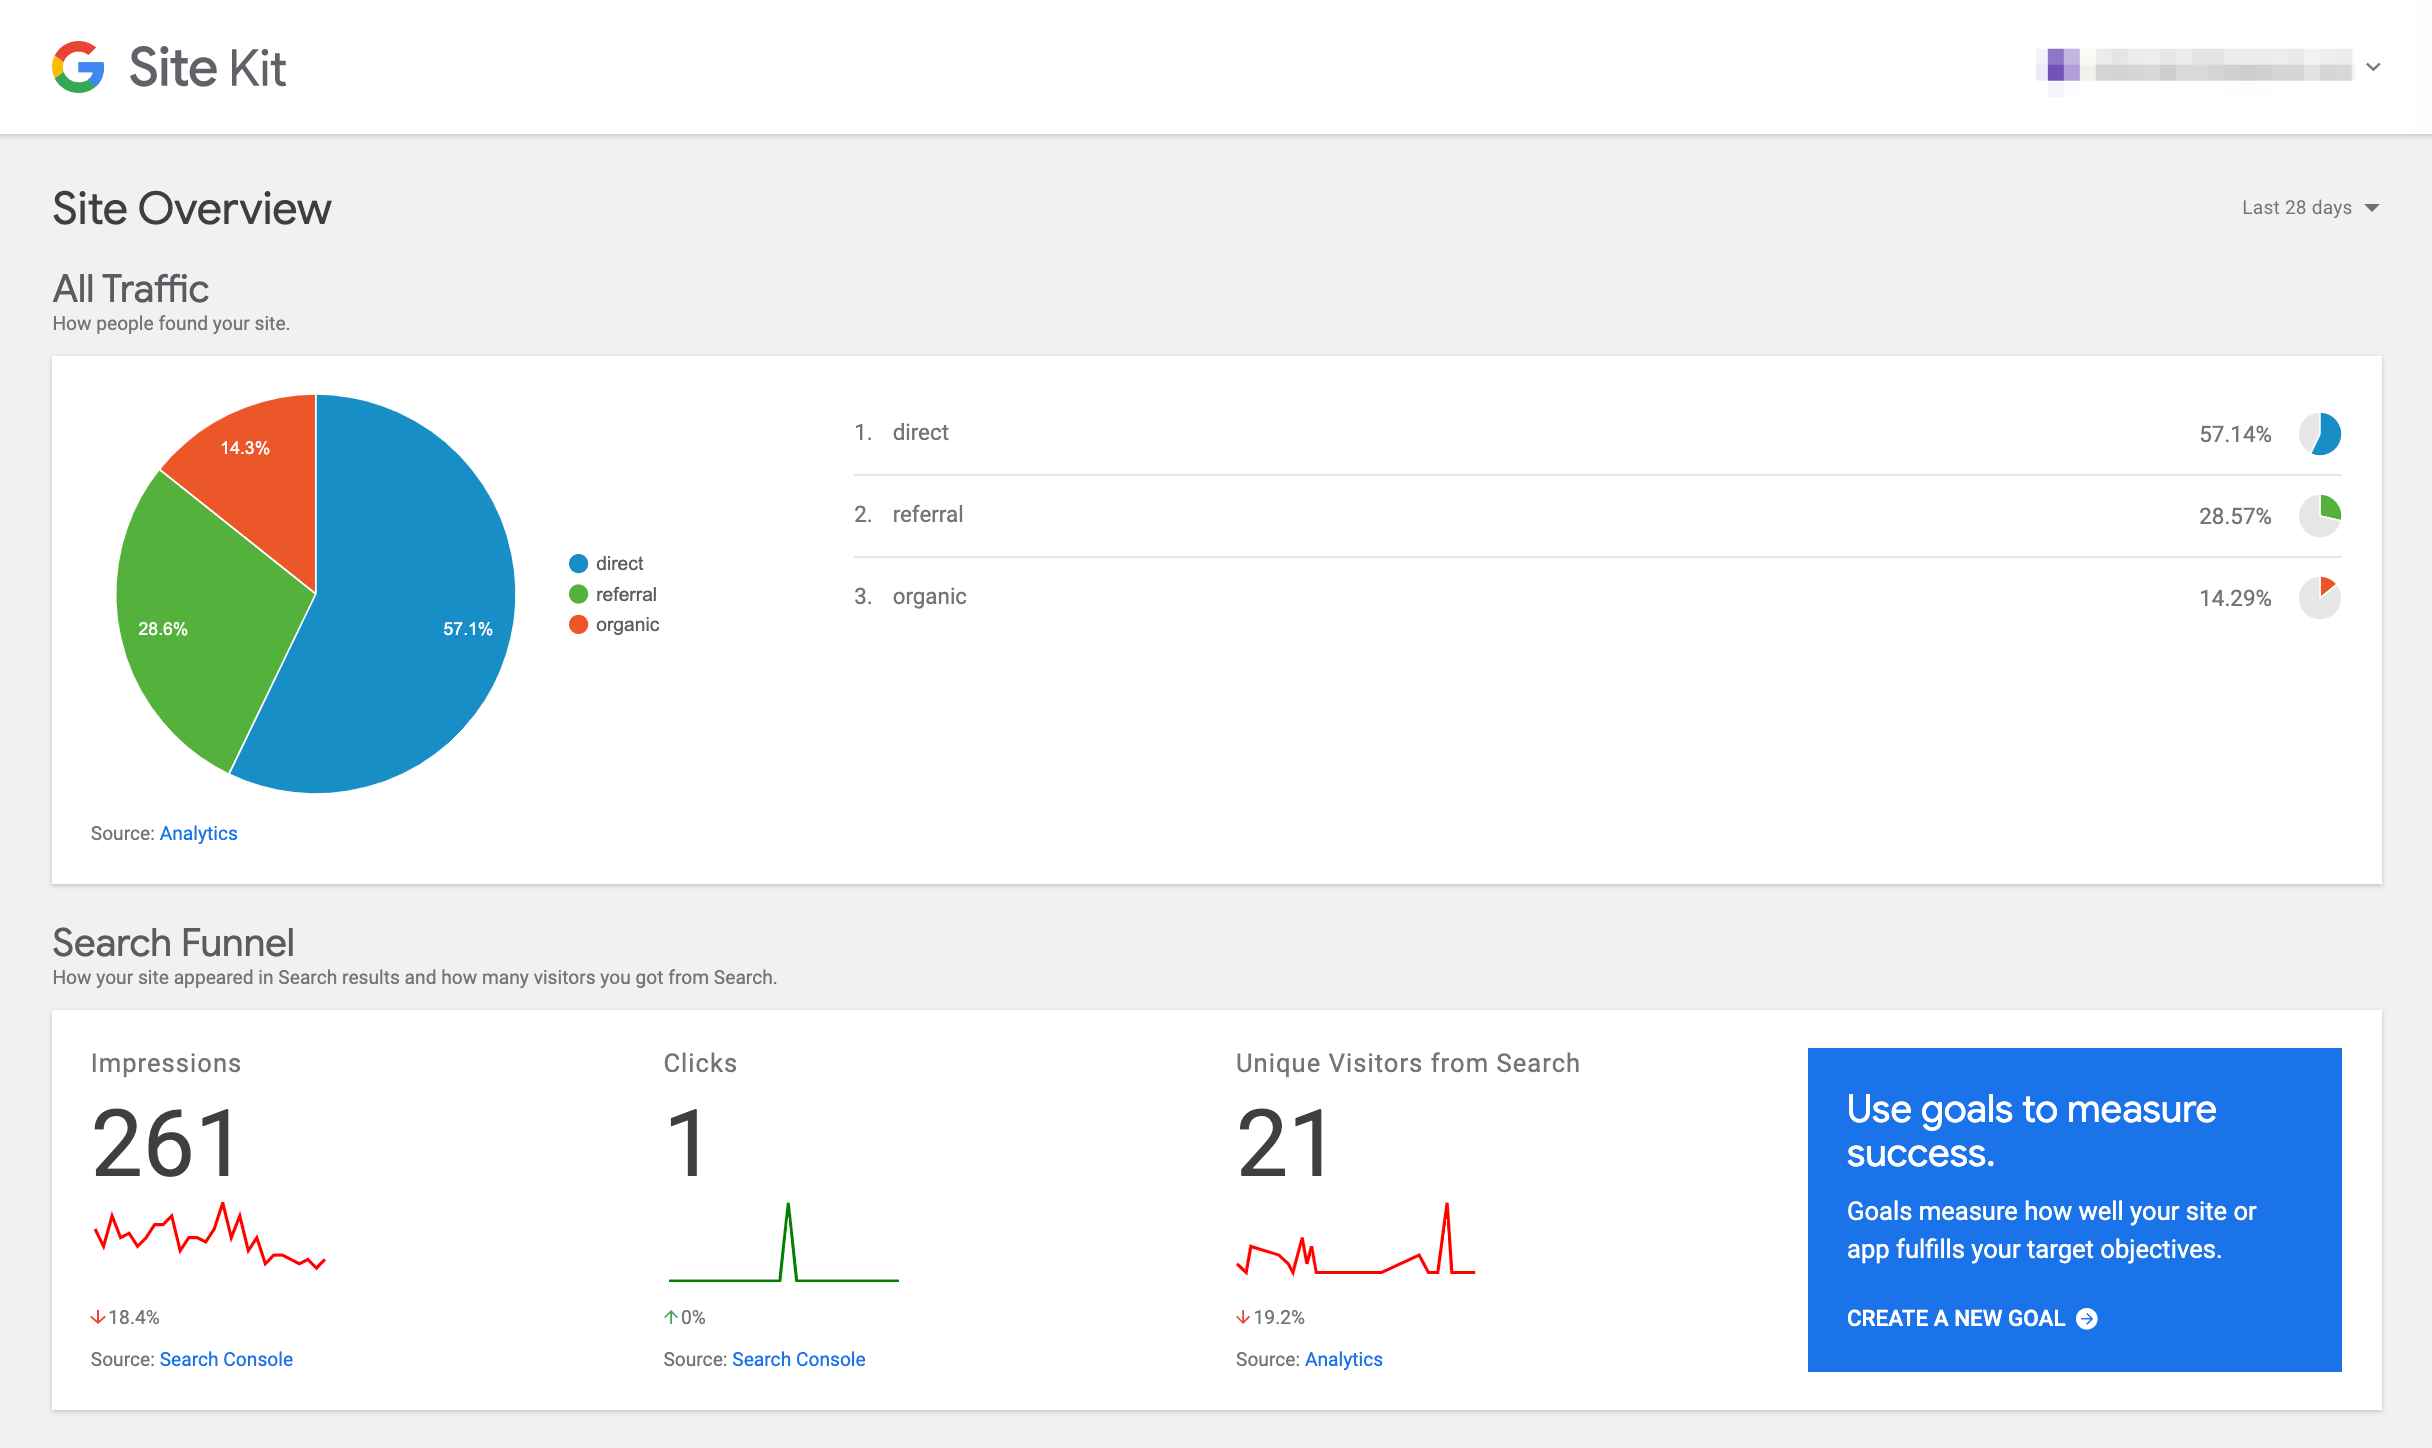 An example of Google Analytics and Search Console data in a Site Kit dashboard.